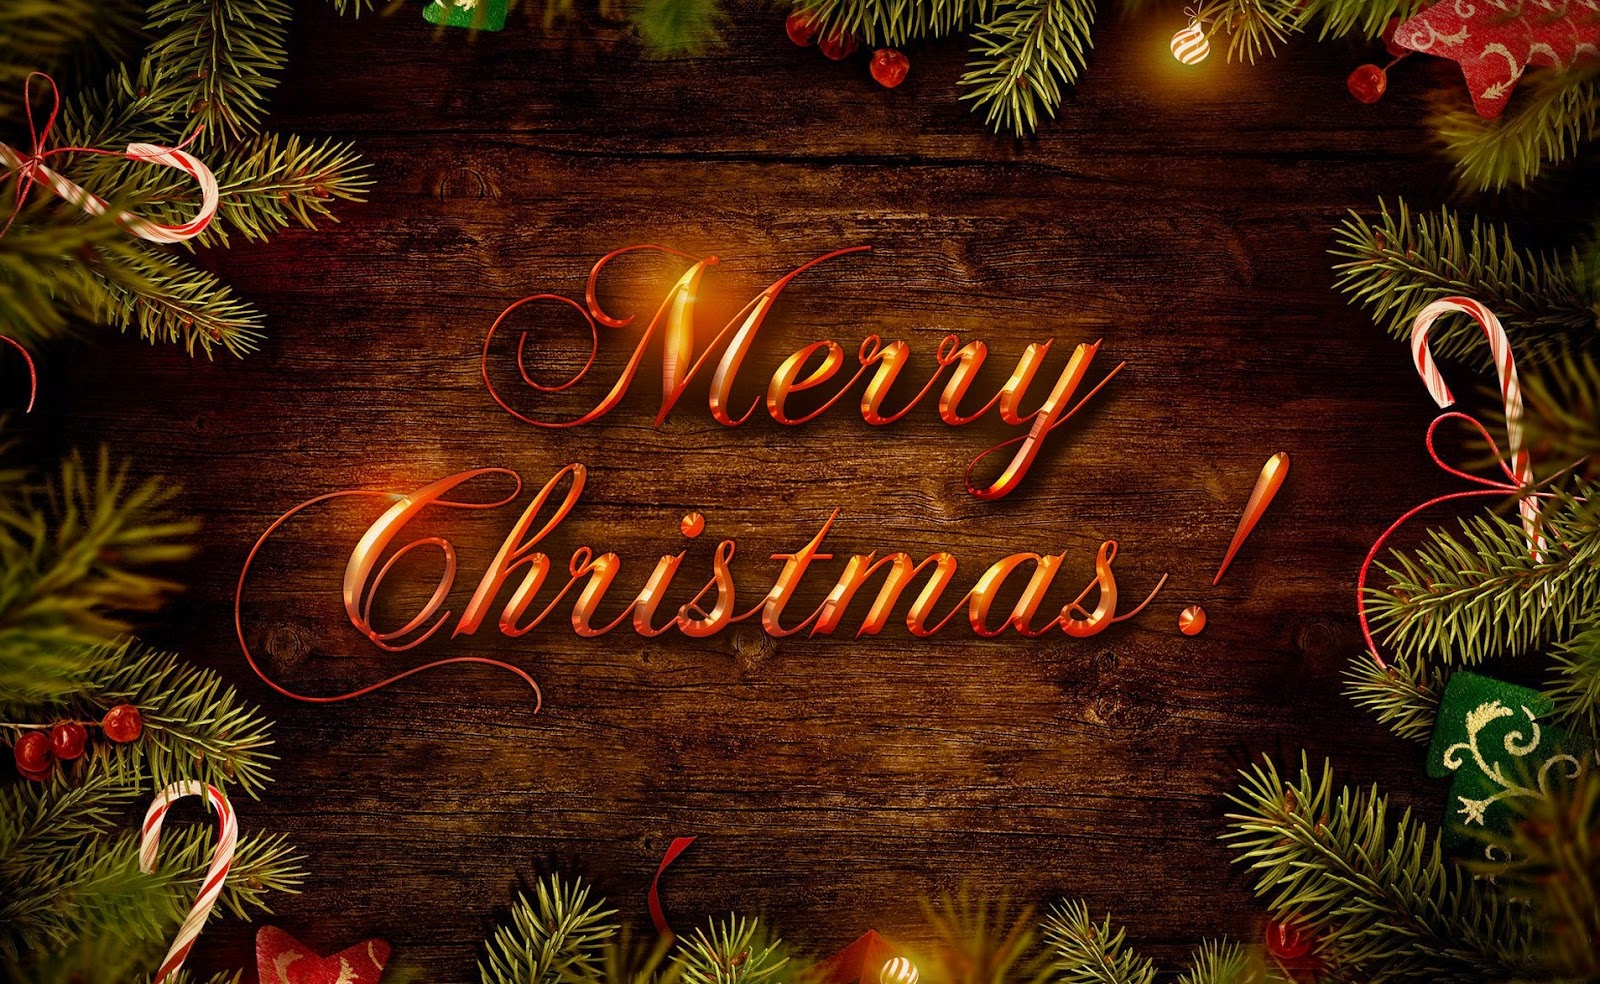 Merry Christmas 2014 Full HD Wallpapers